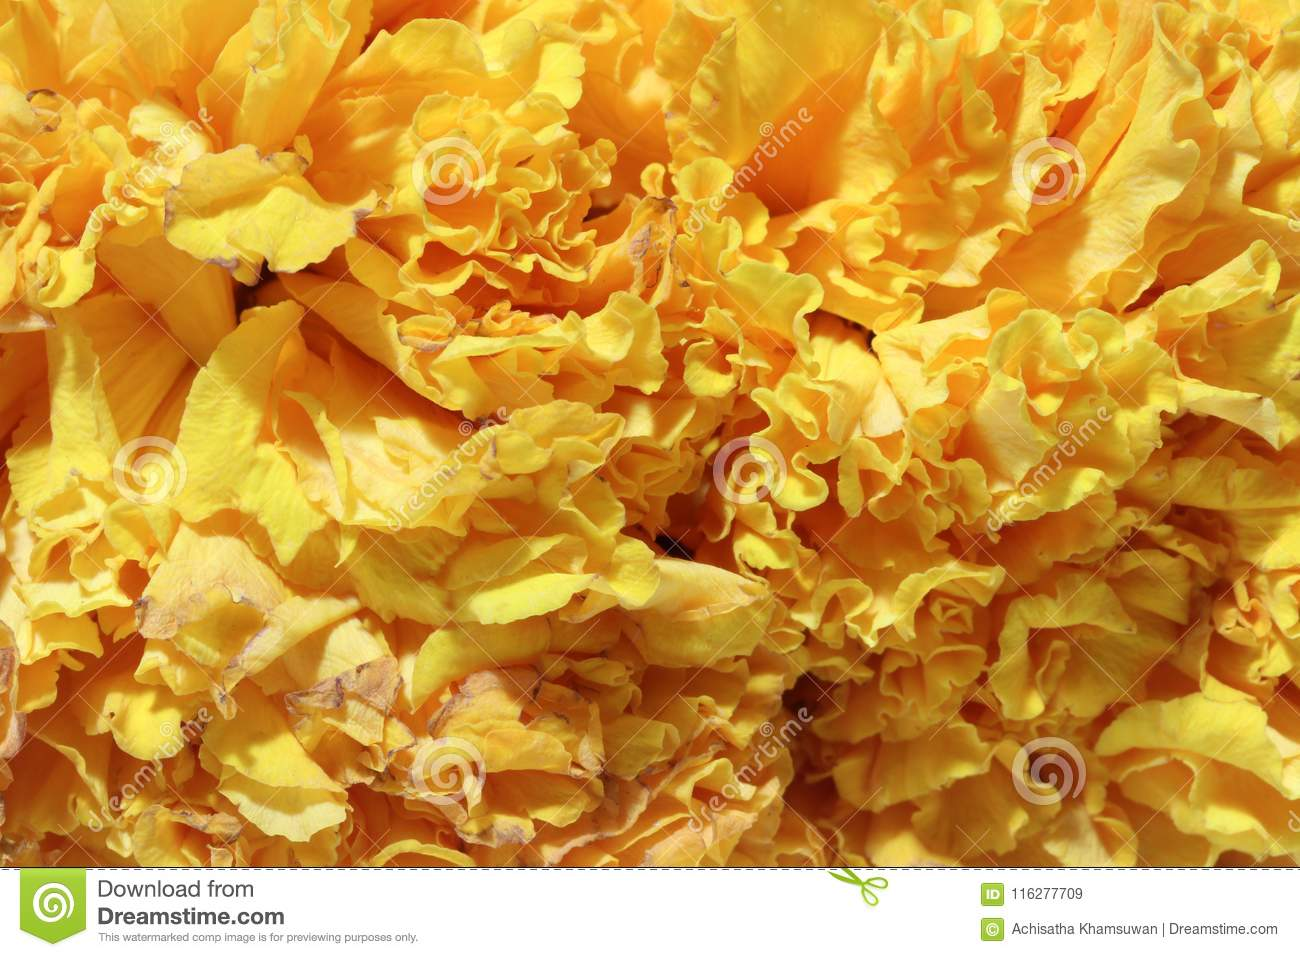 Texture of garland marigold petal flower, a plant of the daisy family.